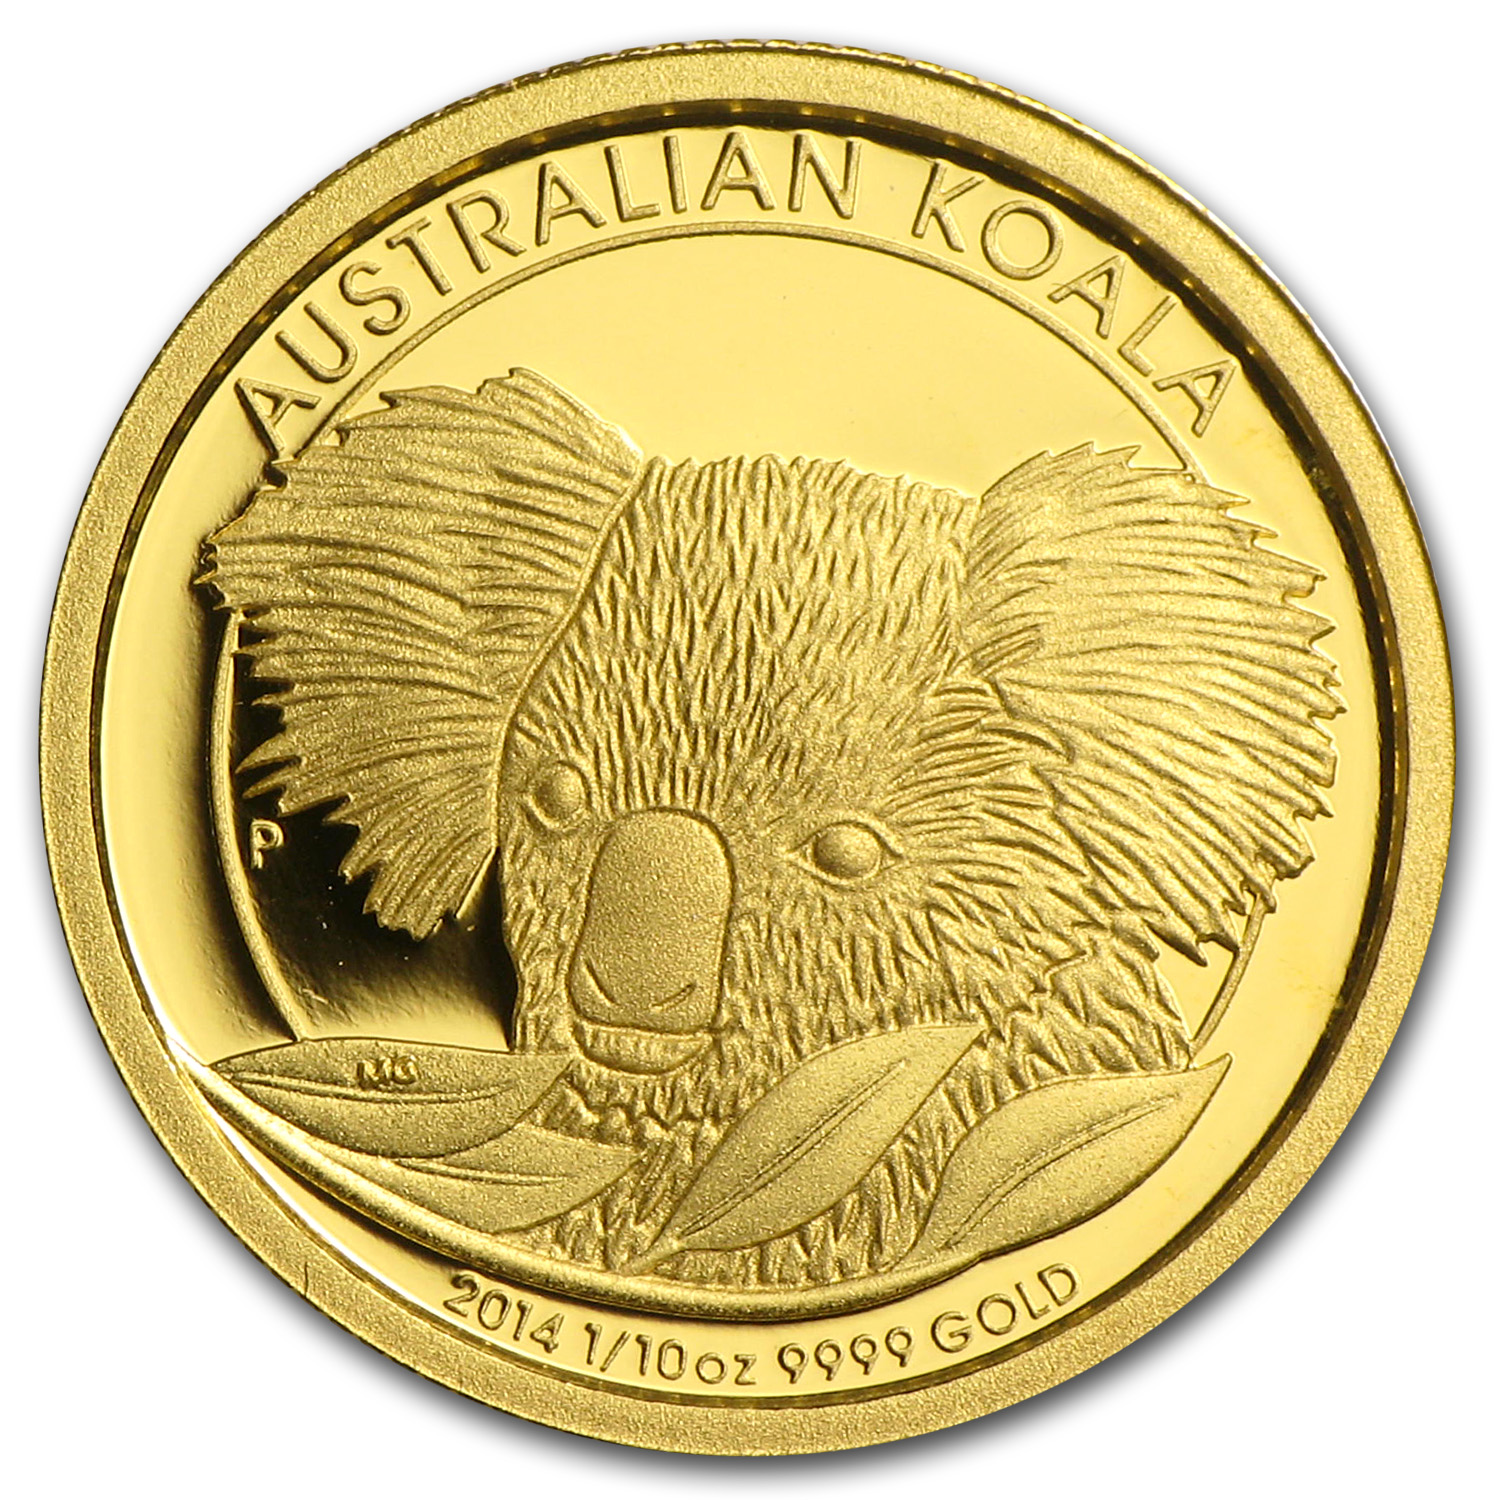 2014 1/10 oz Australian Gold Koala Proof